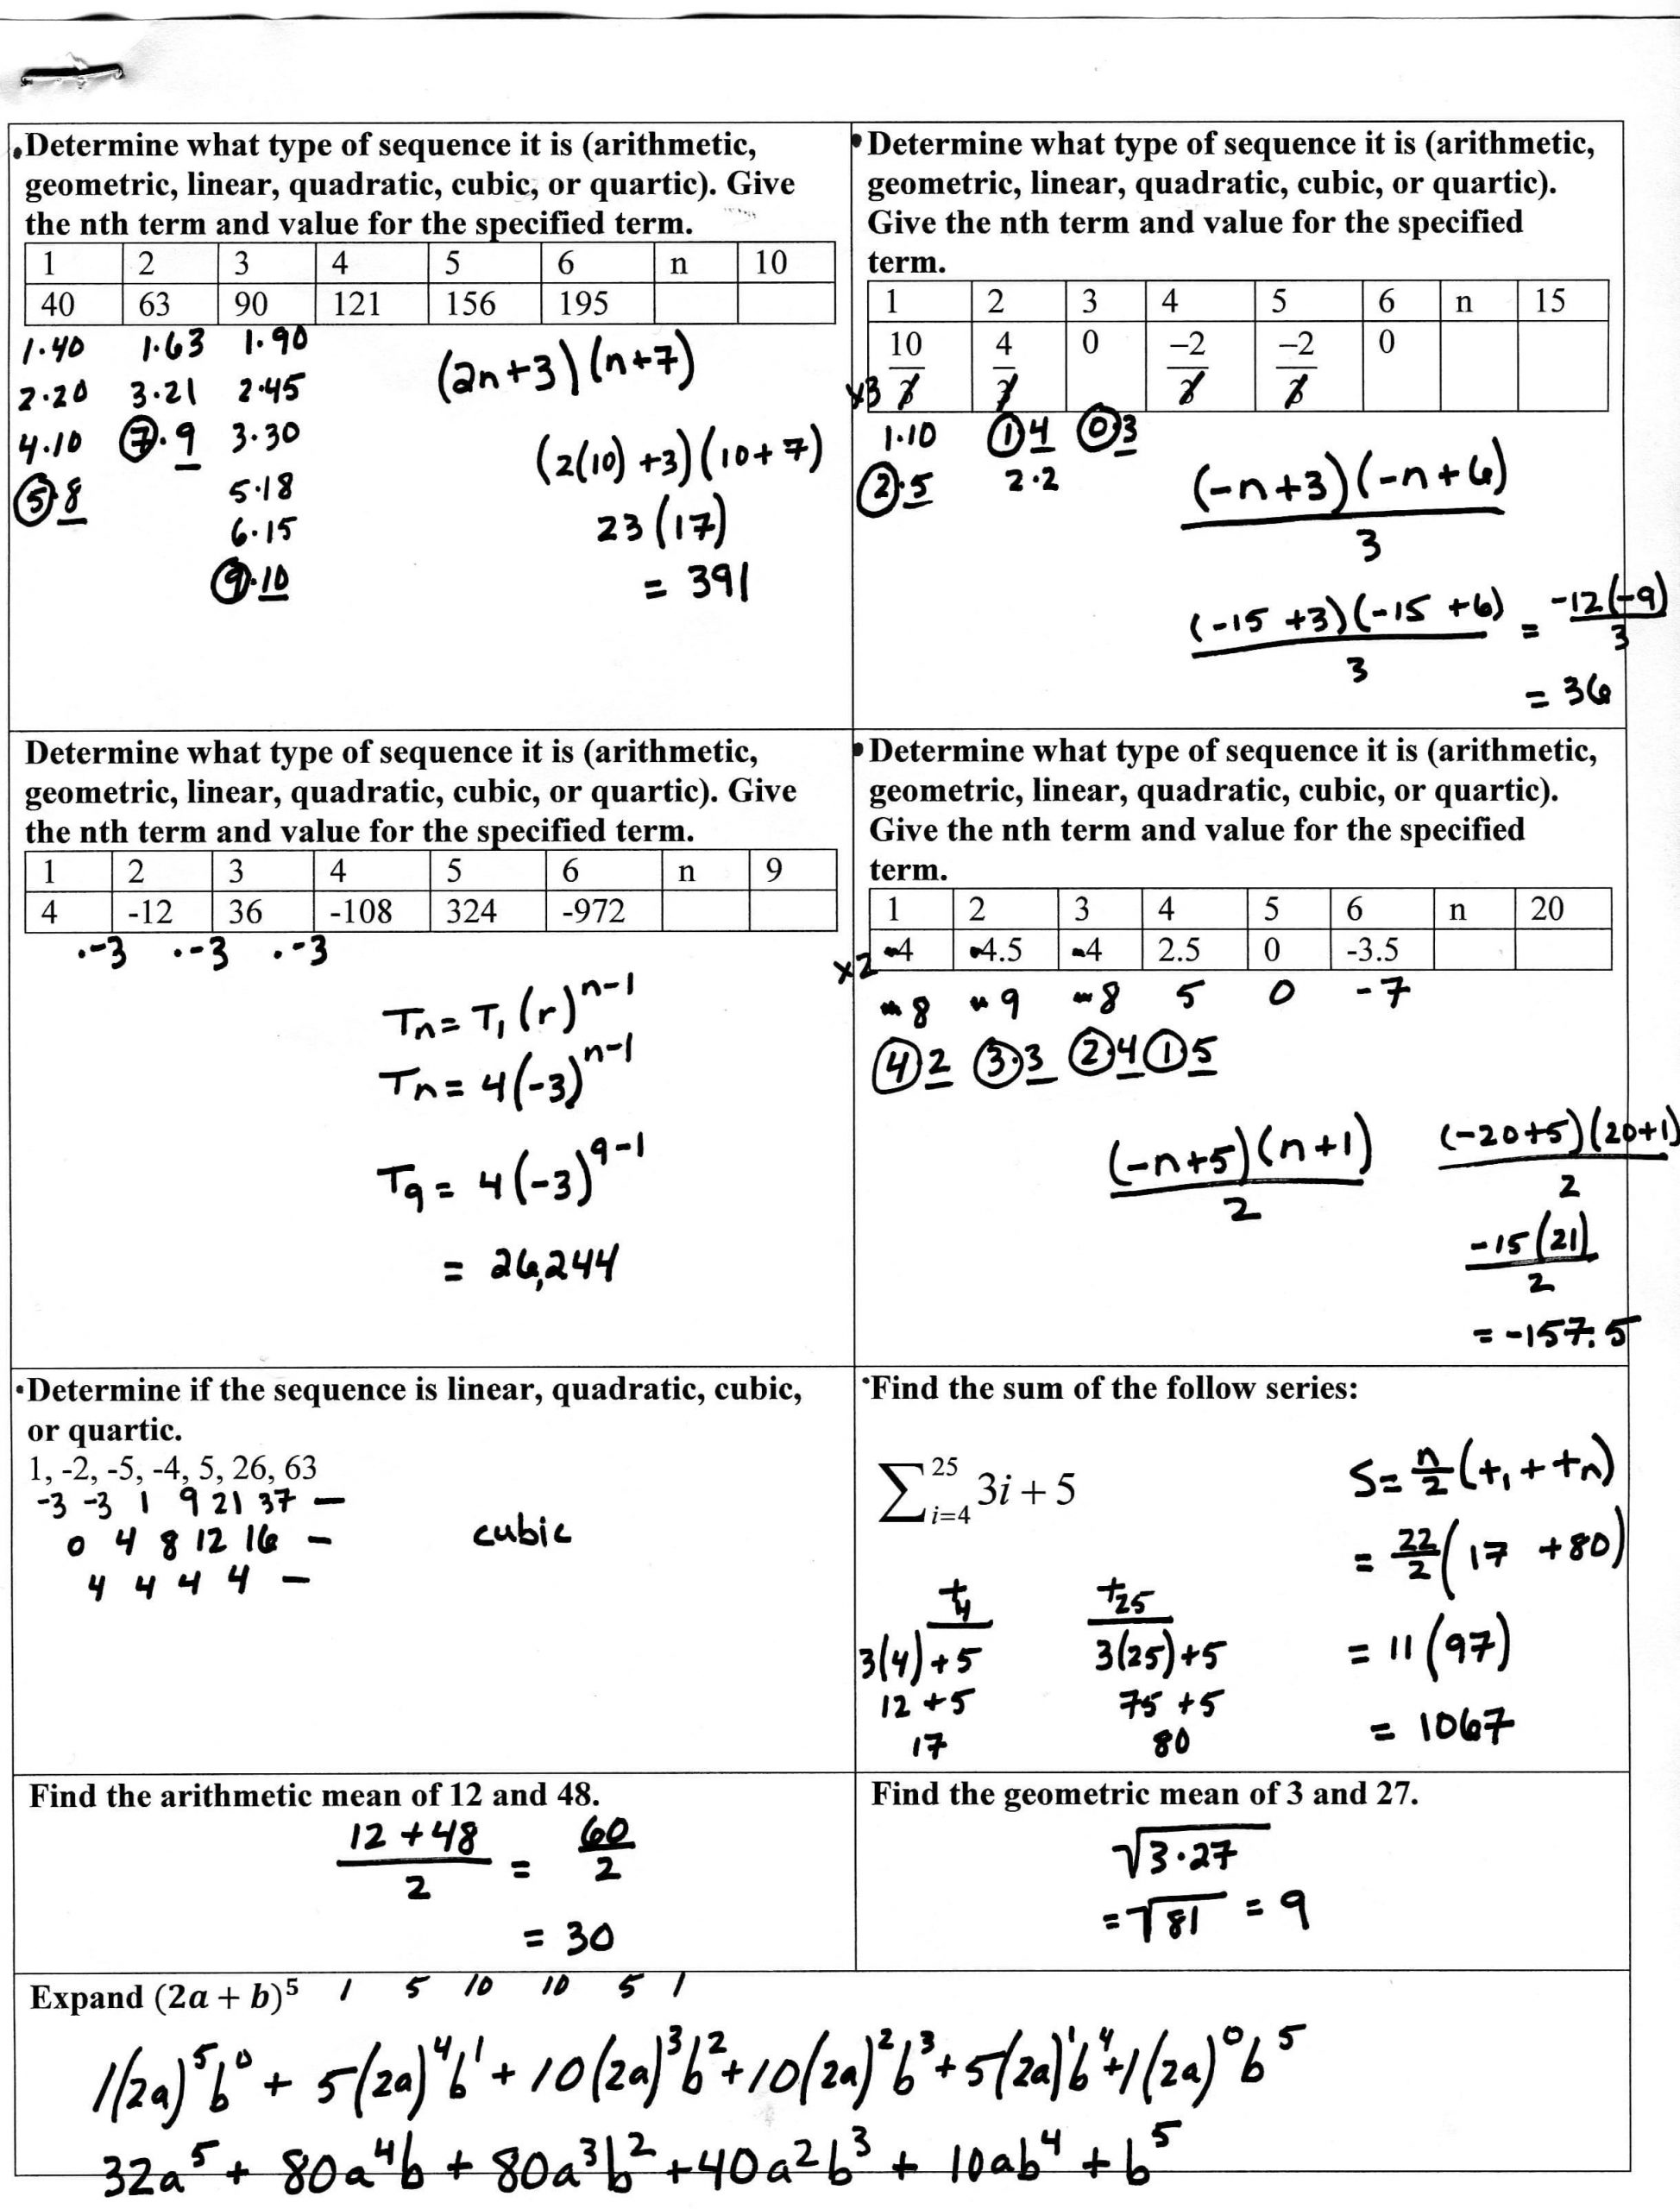 Sequencing Worksheets for Middle School Sequence Series Worksheets